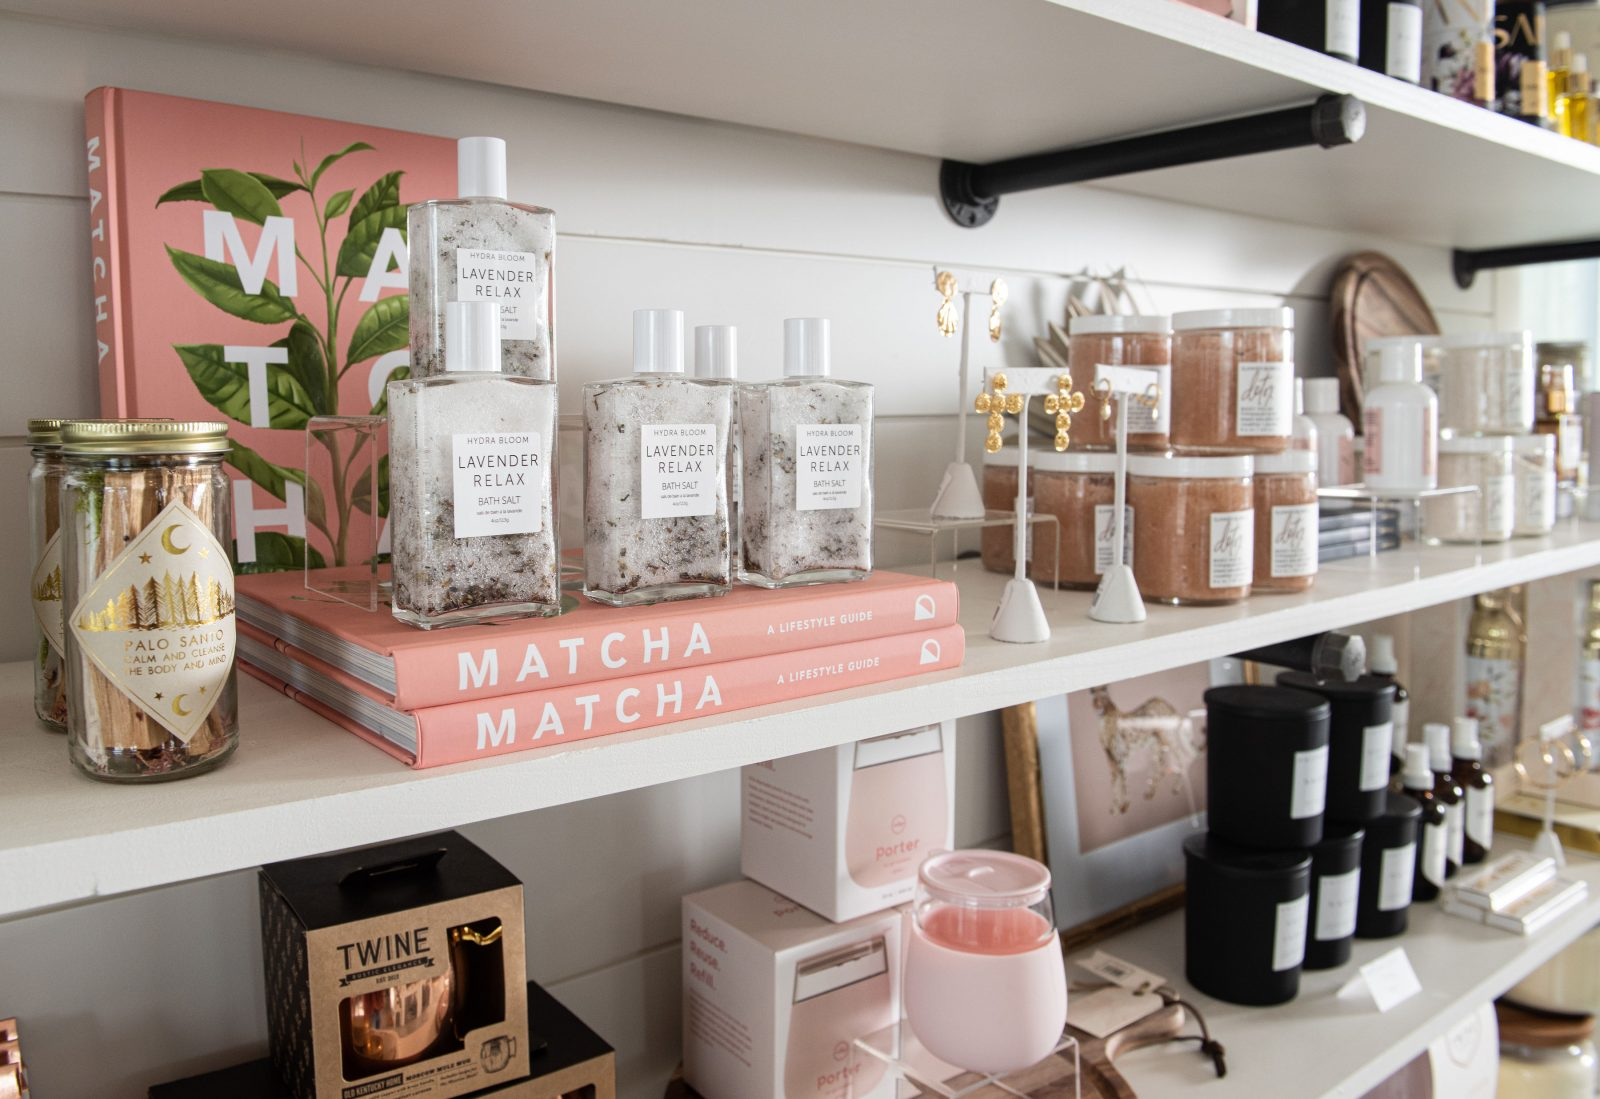 Matcha books, candles and more at Nella Moon